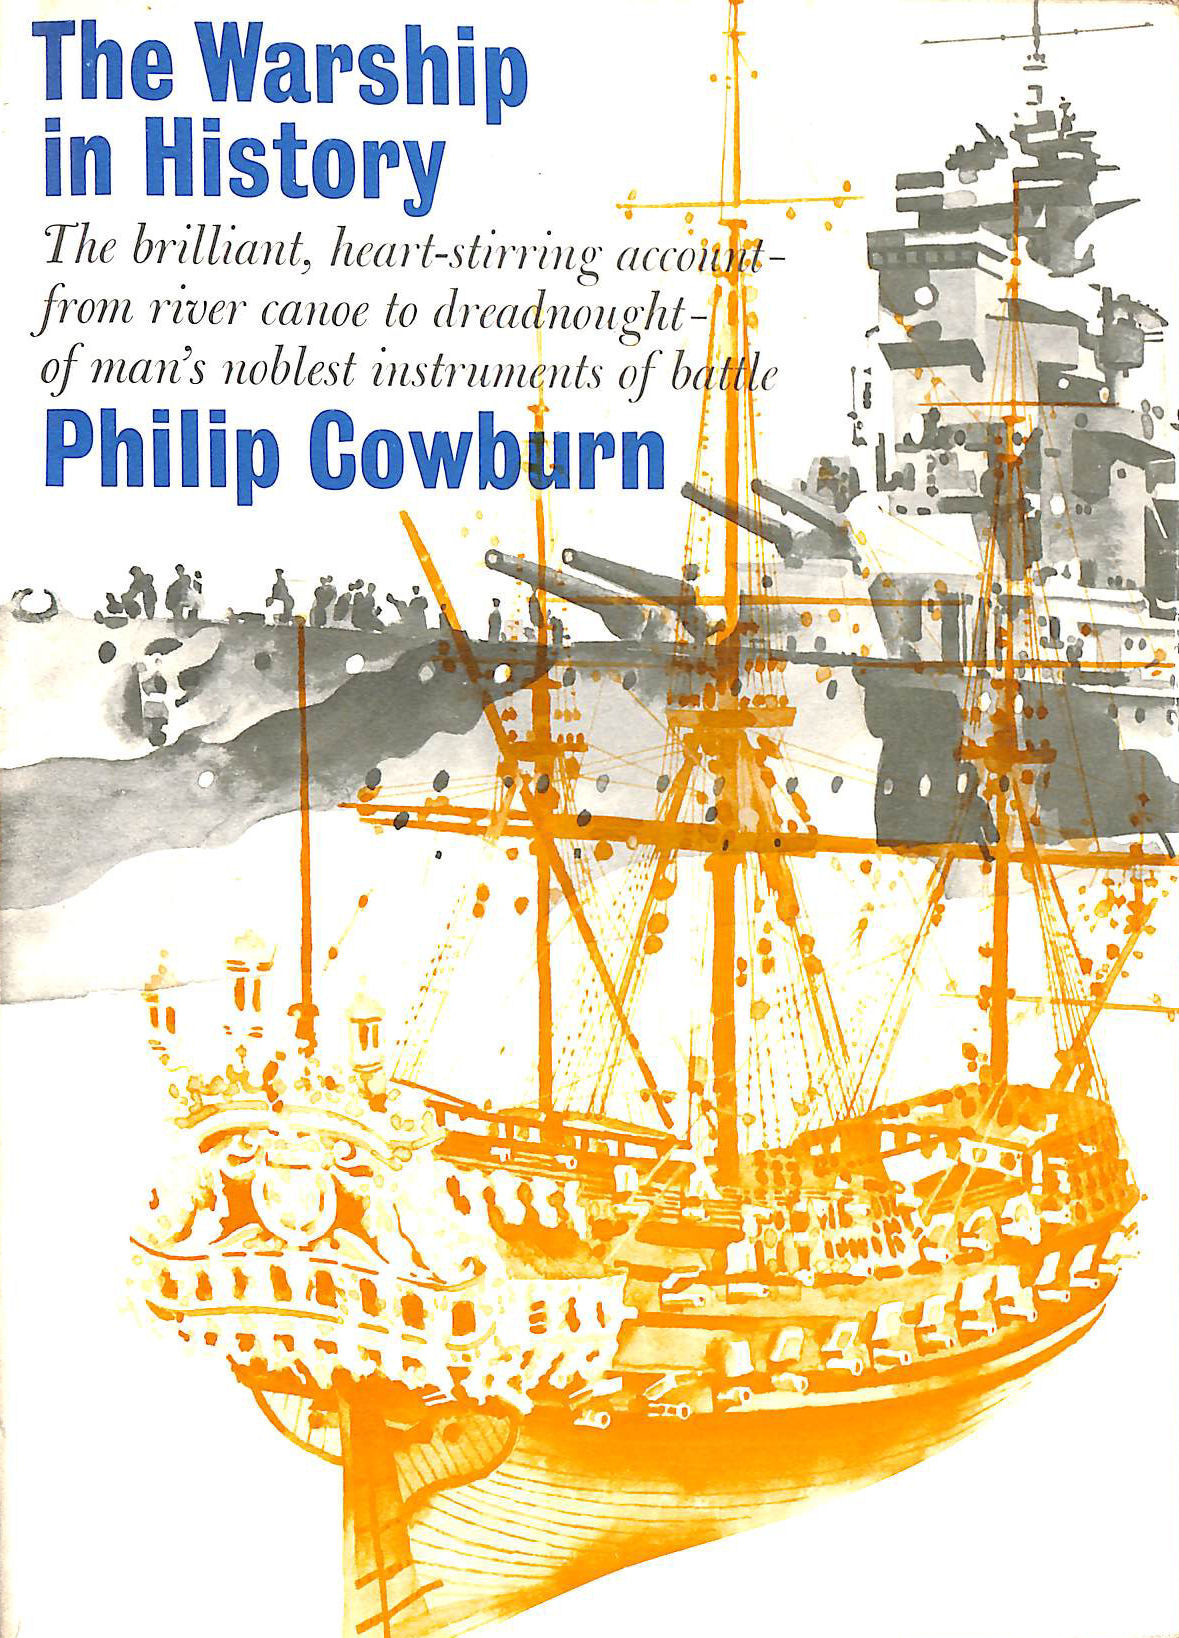 Image for The Warship in History: The brilliant, heart-stirring account - from river canoe to dreadnought - of man's noblest instruments of battle.